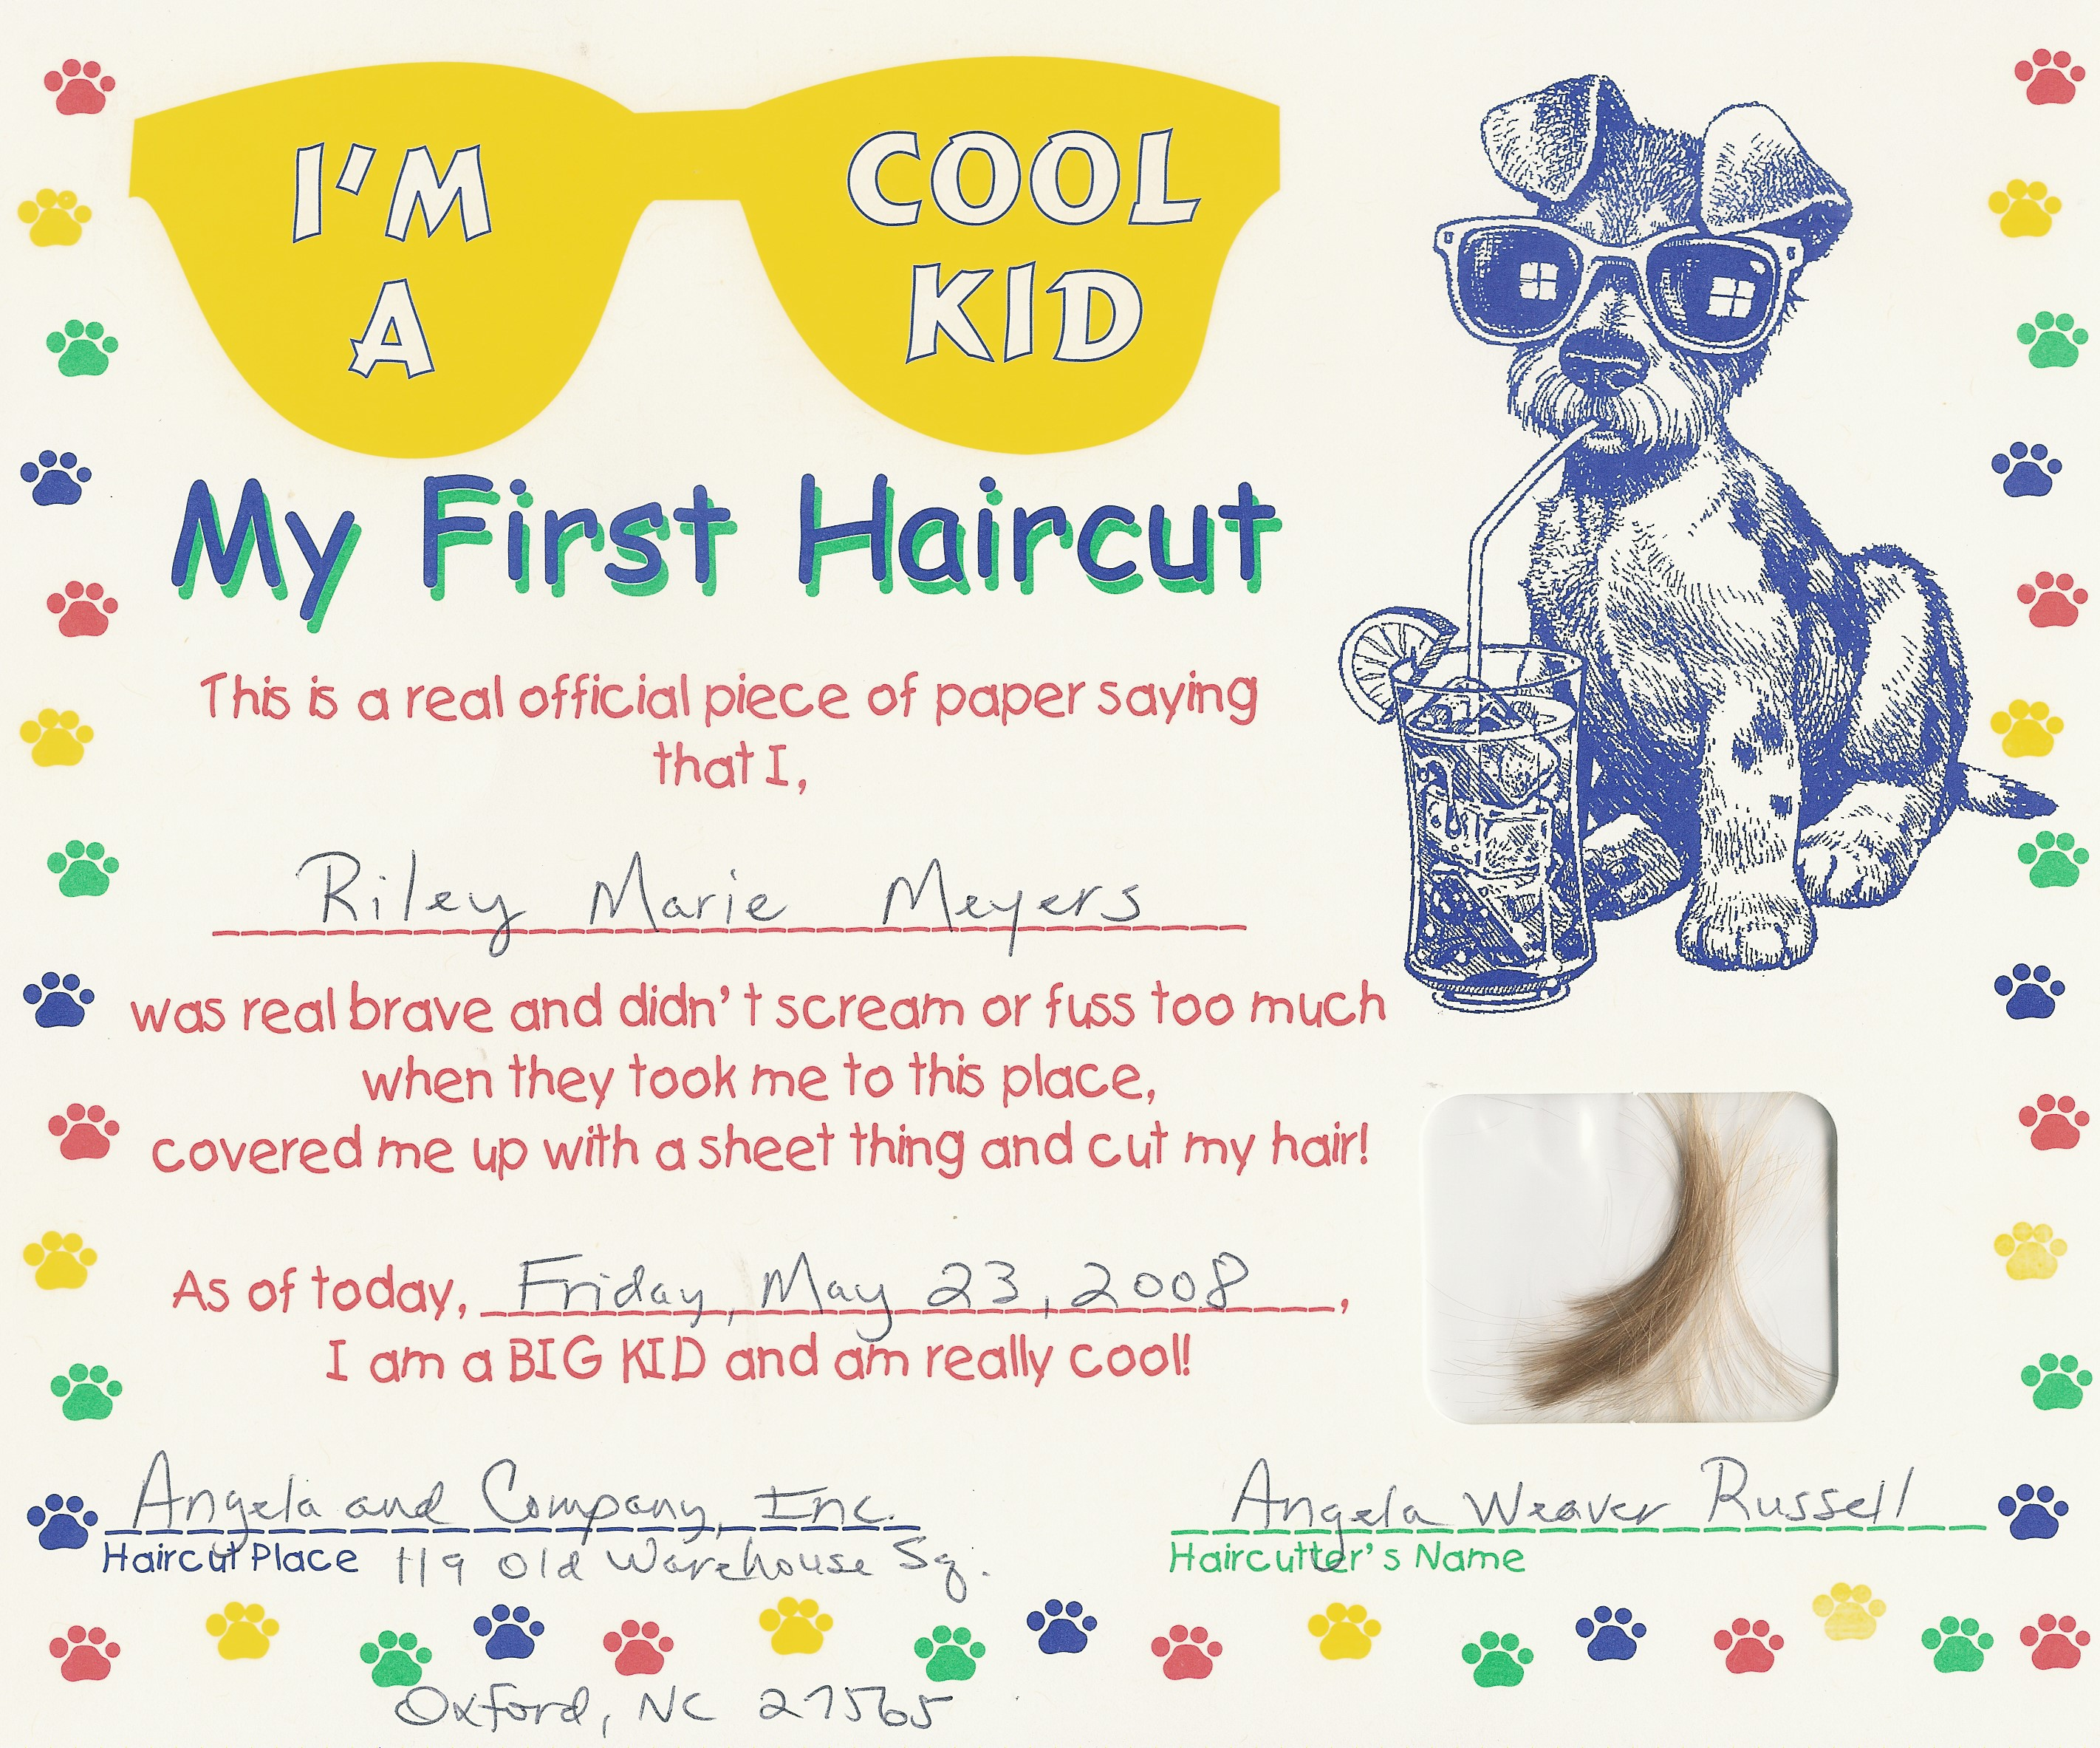 Fire training certificate template images santa wish list for kids first haircut certificate template aradiotk certificate first haircut certificate template fire training certificate template images yadclub Image collections